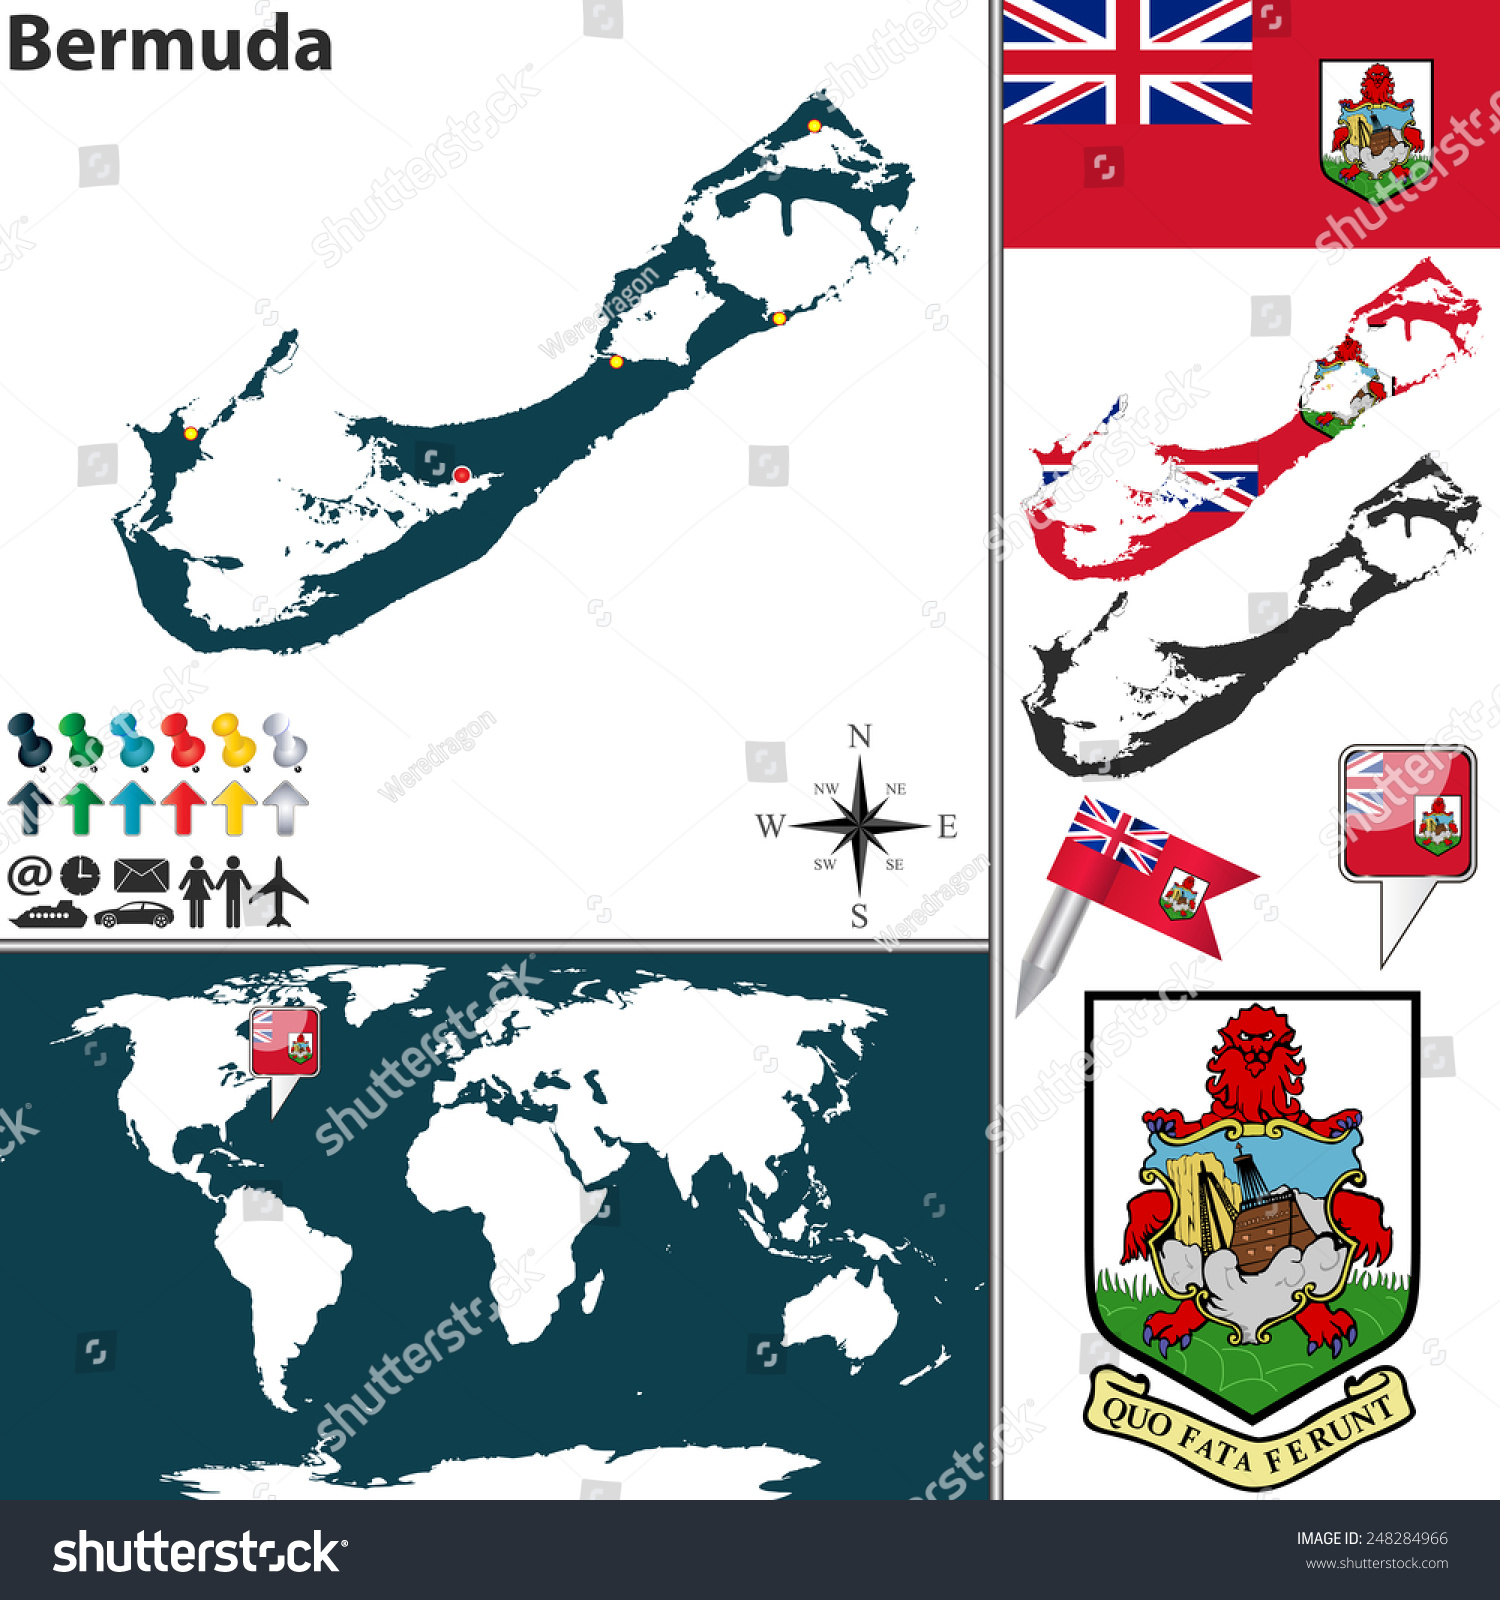 Vector Map Bermuda Coat Arms Location Stock Vector - Location of bermuda on world map